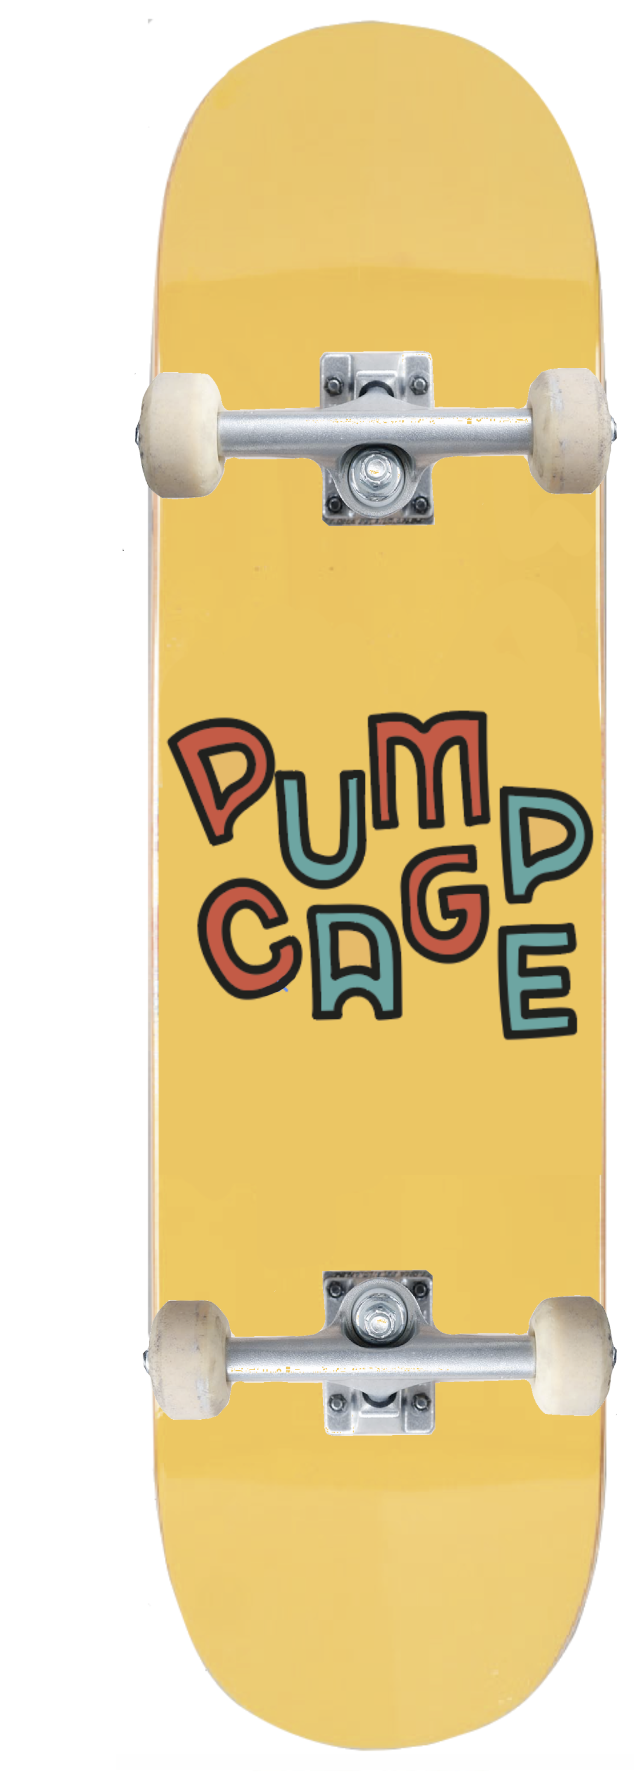 Pumpcage Deep Yellow Complete